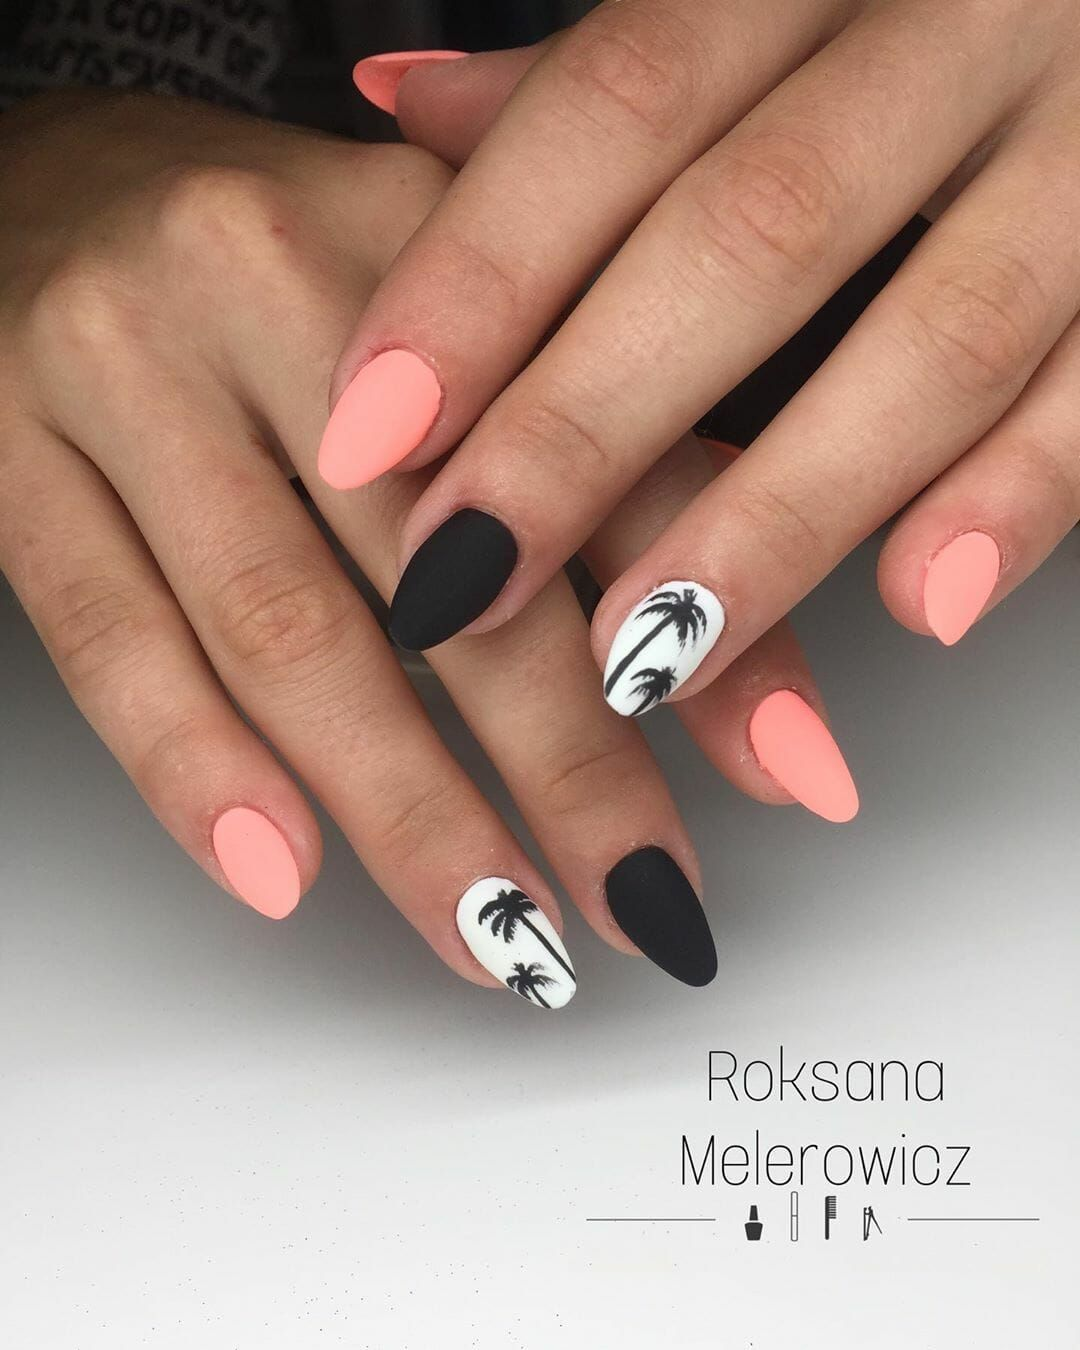 Alternating Colors Of Pink Black And White Stylish Nails Art Makeup Nails Designs Gel Nails